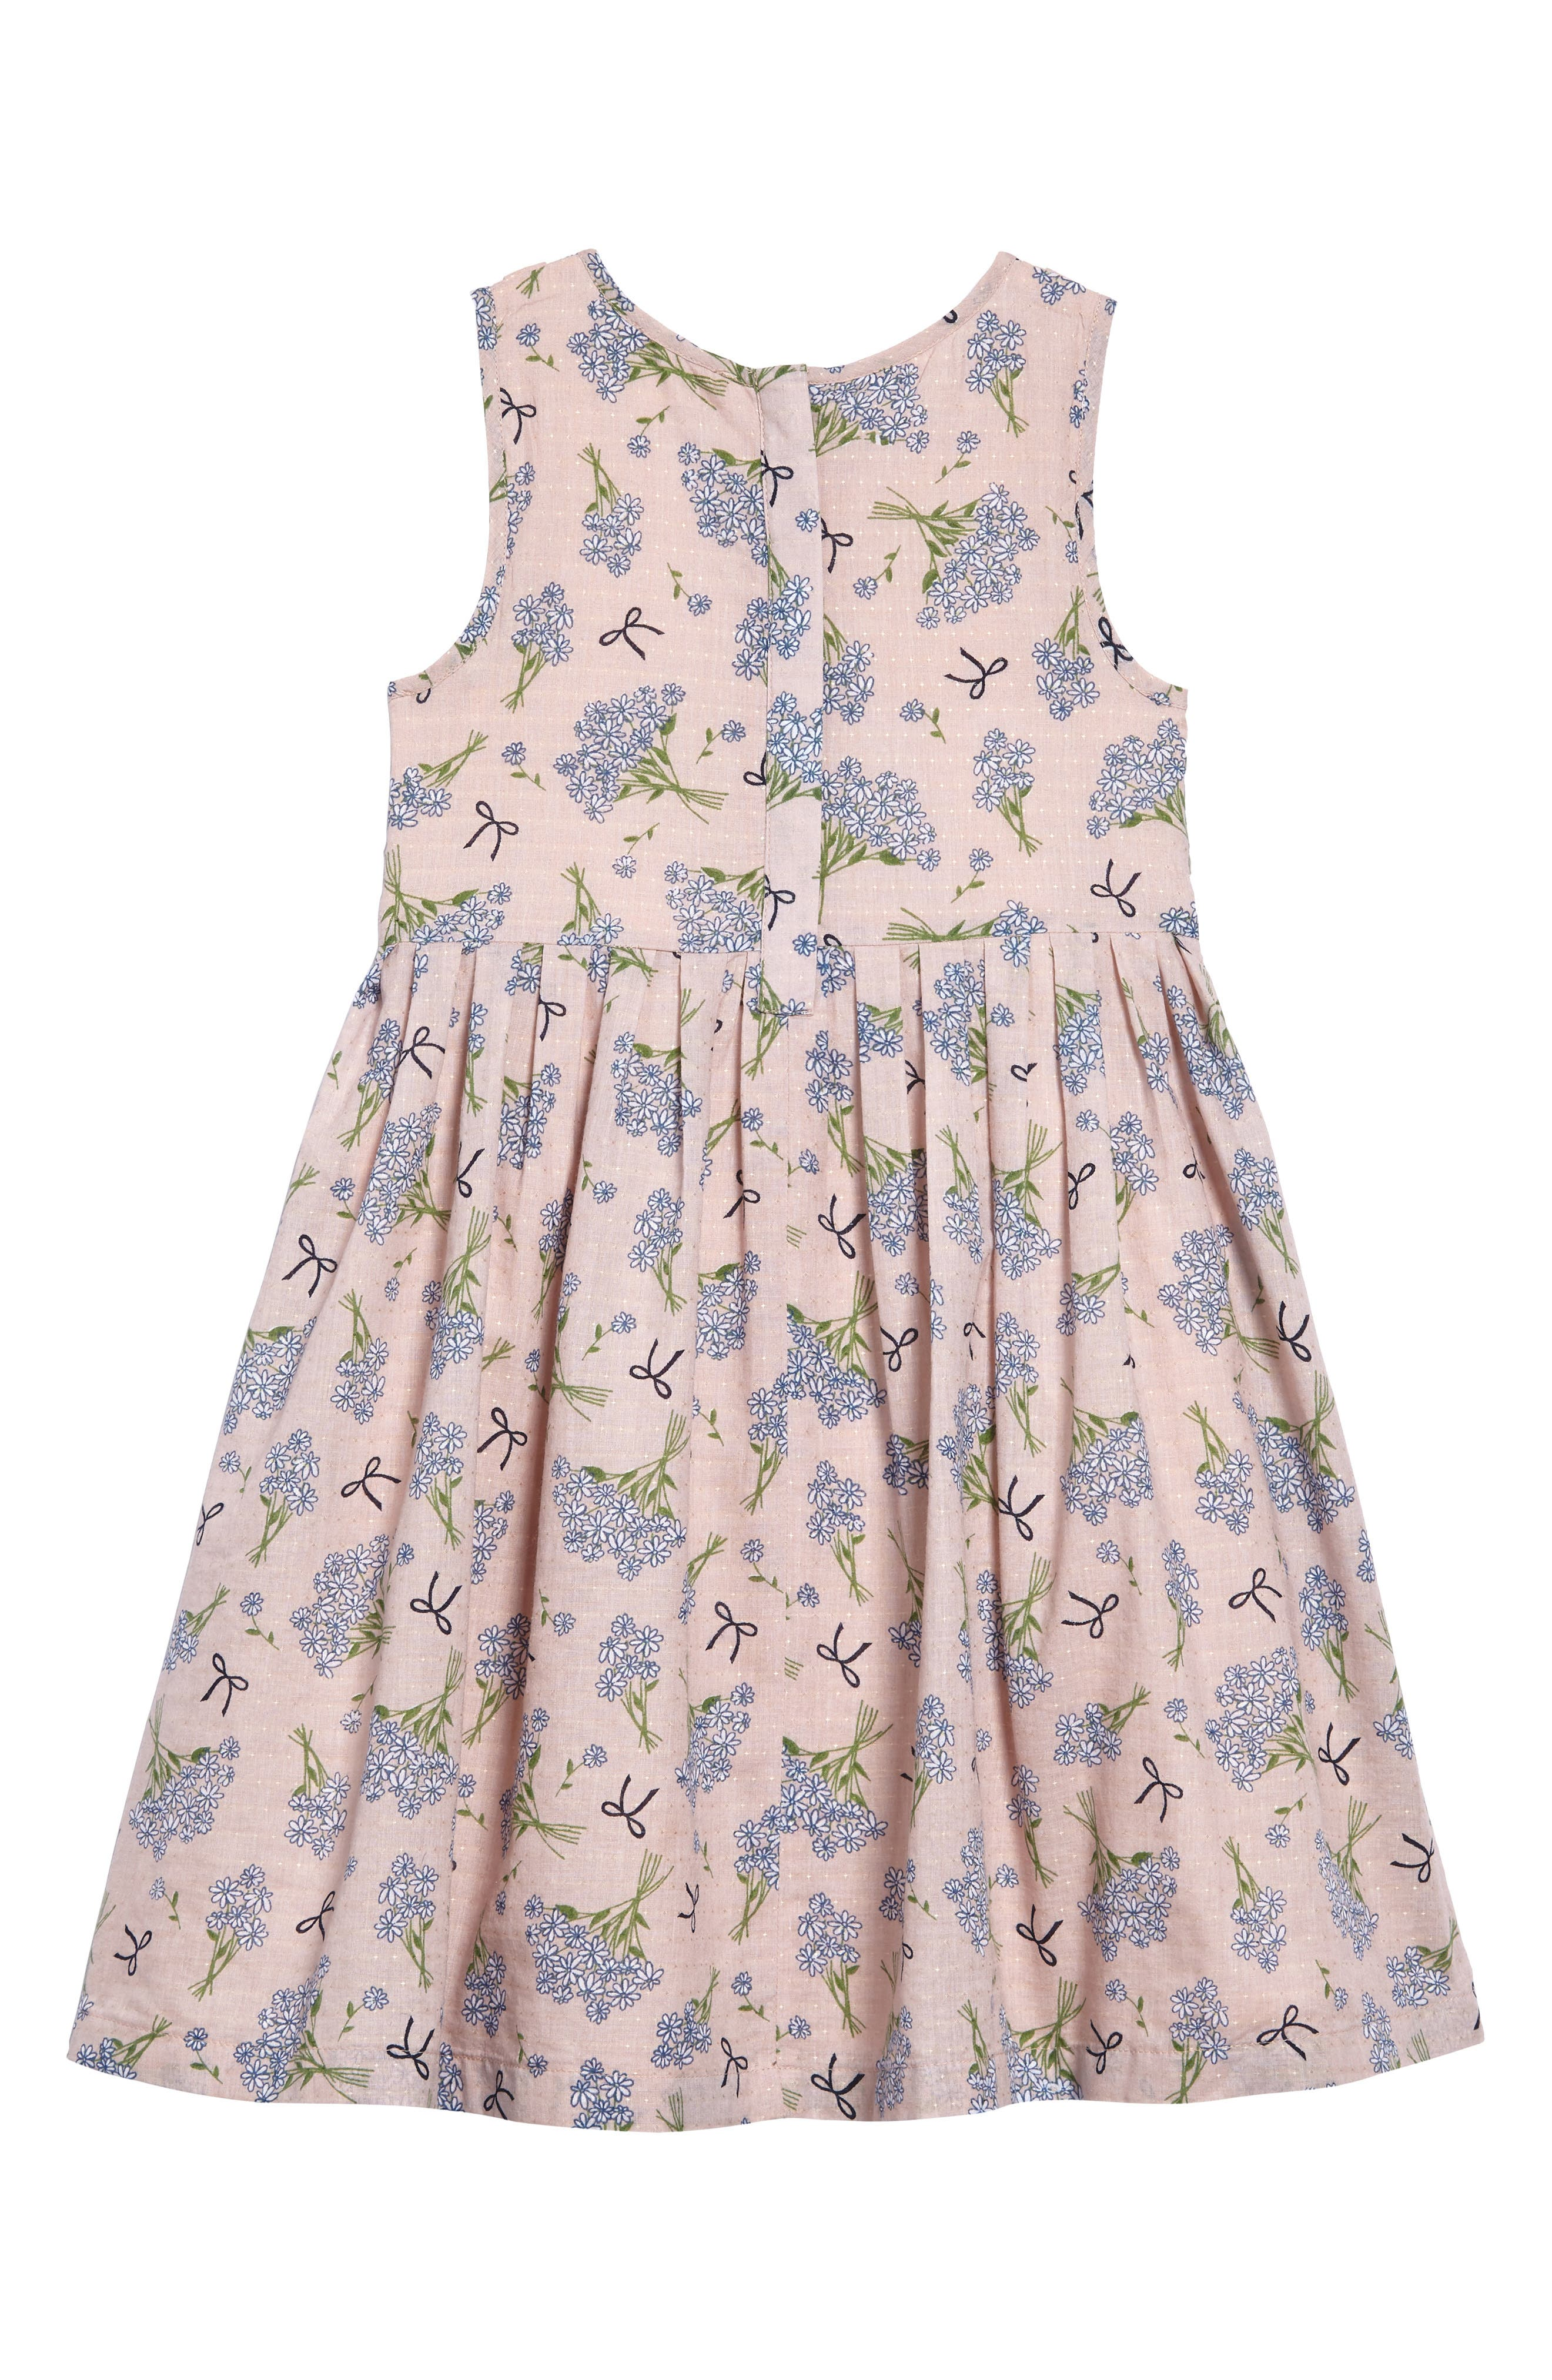 Dobby Floral Pleat Dress,                             Alternate thumbnail 2, color,                             Pink Peach Spring Floral